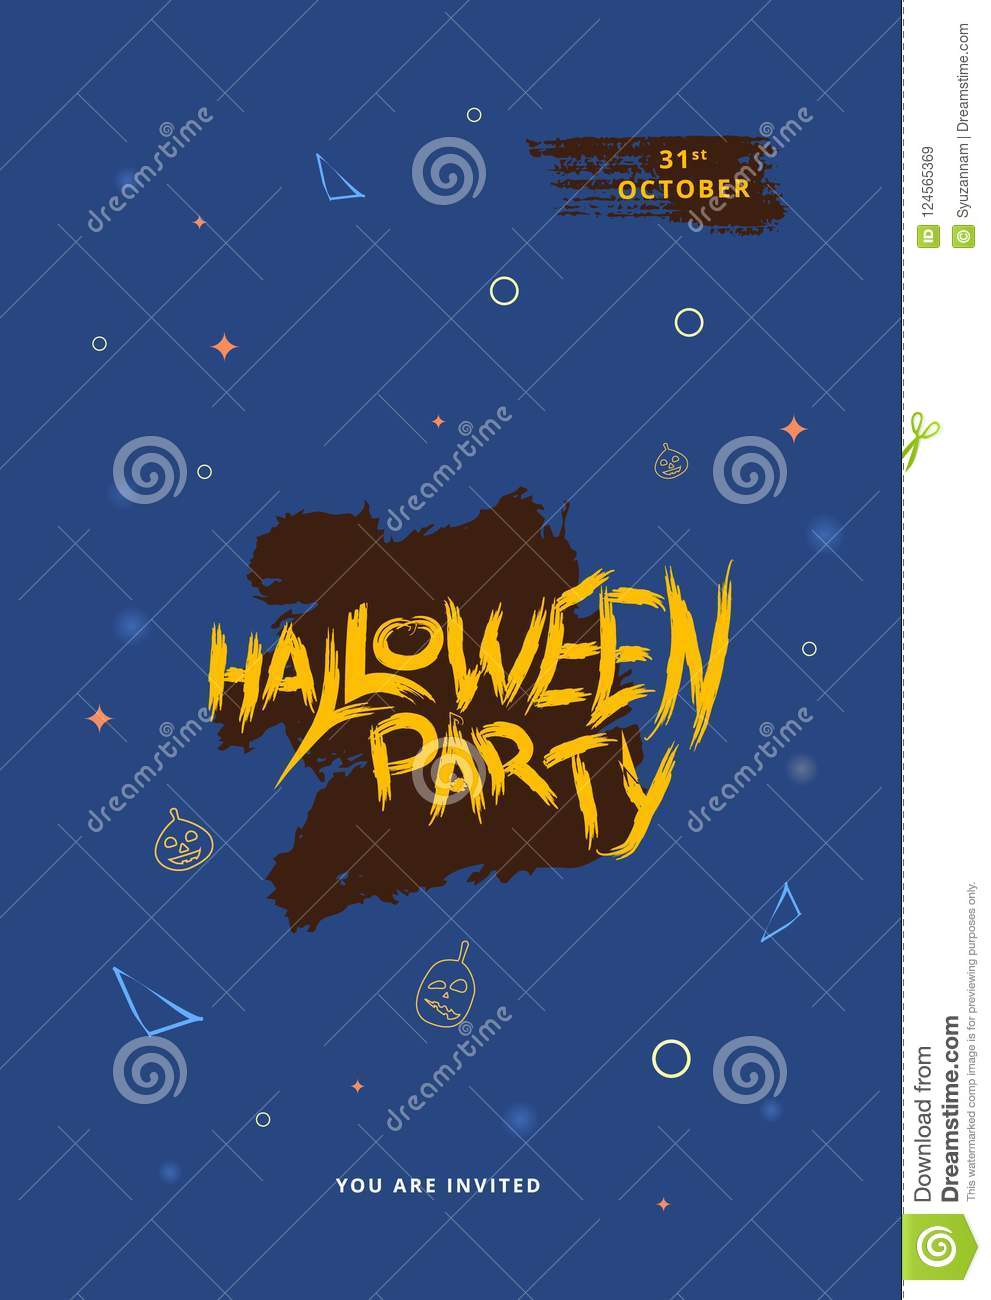 Happy Halloween Party Flat Vertical Poster Vector Illustration